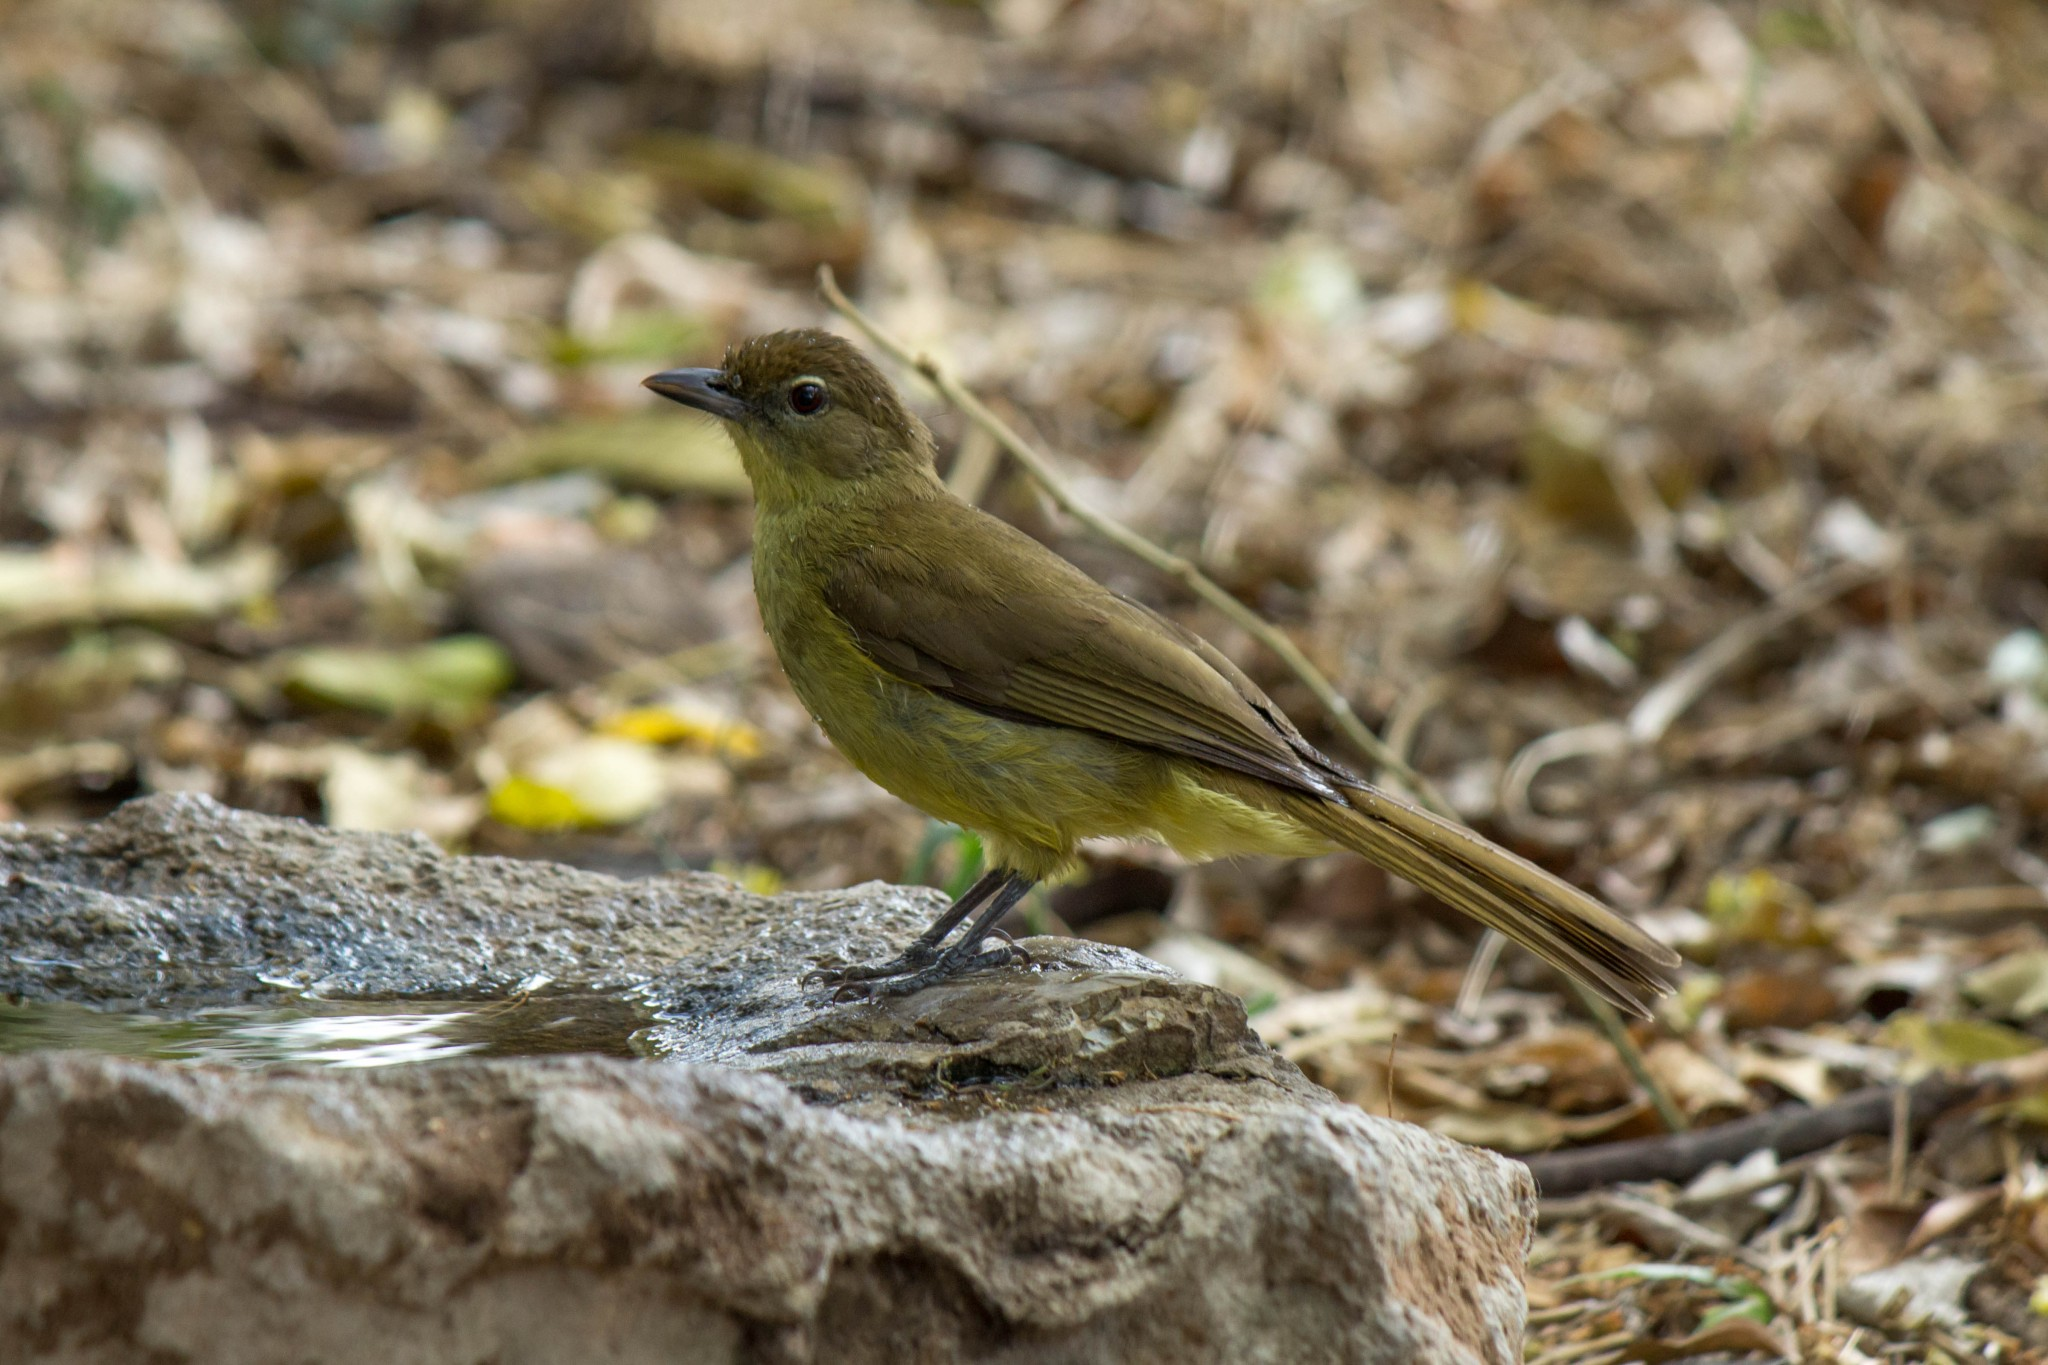 Yellow-Bellied Greenbul @ Tembe Elephant Park. Photo: Håvard Rosenlund